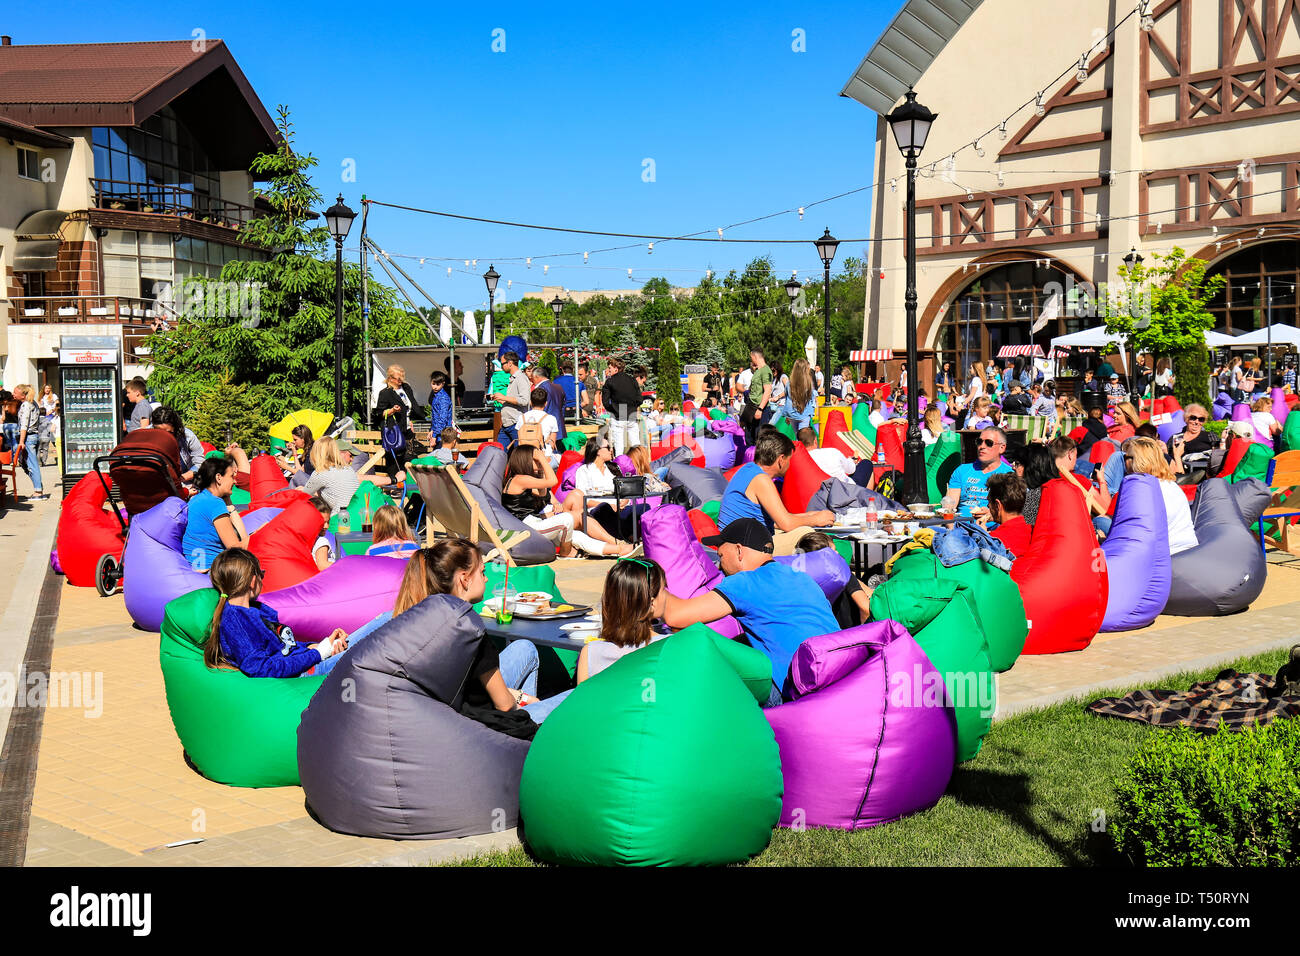 Dnepr city, Ukraine. May 28, 2018. People rest on colors chairs during the festival of food in spring, summer. Armchair bag. Dnepropetrovsk - Stock Image